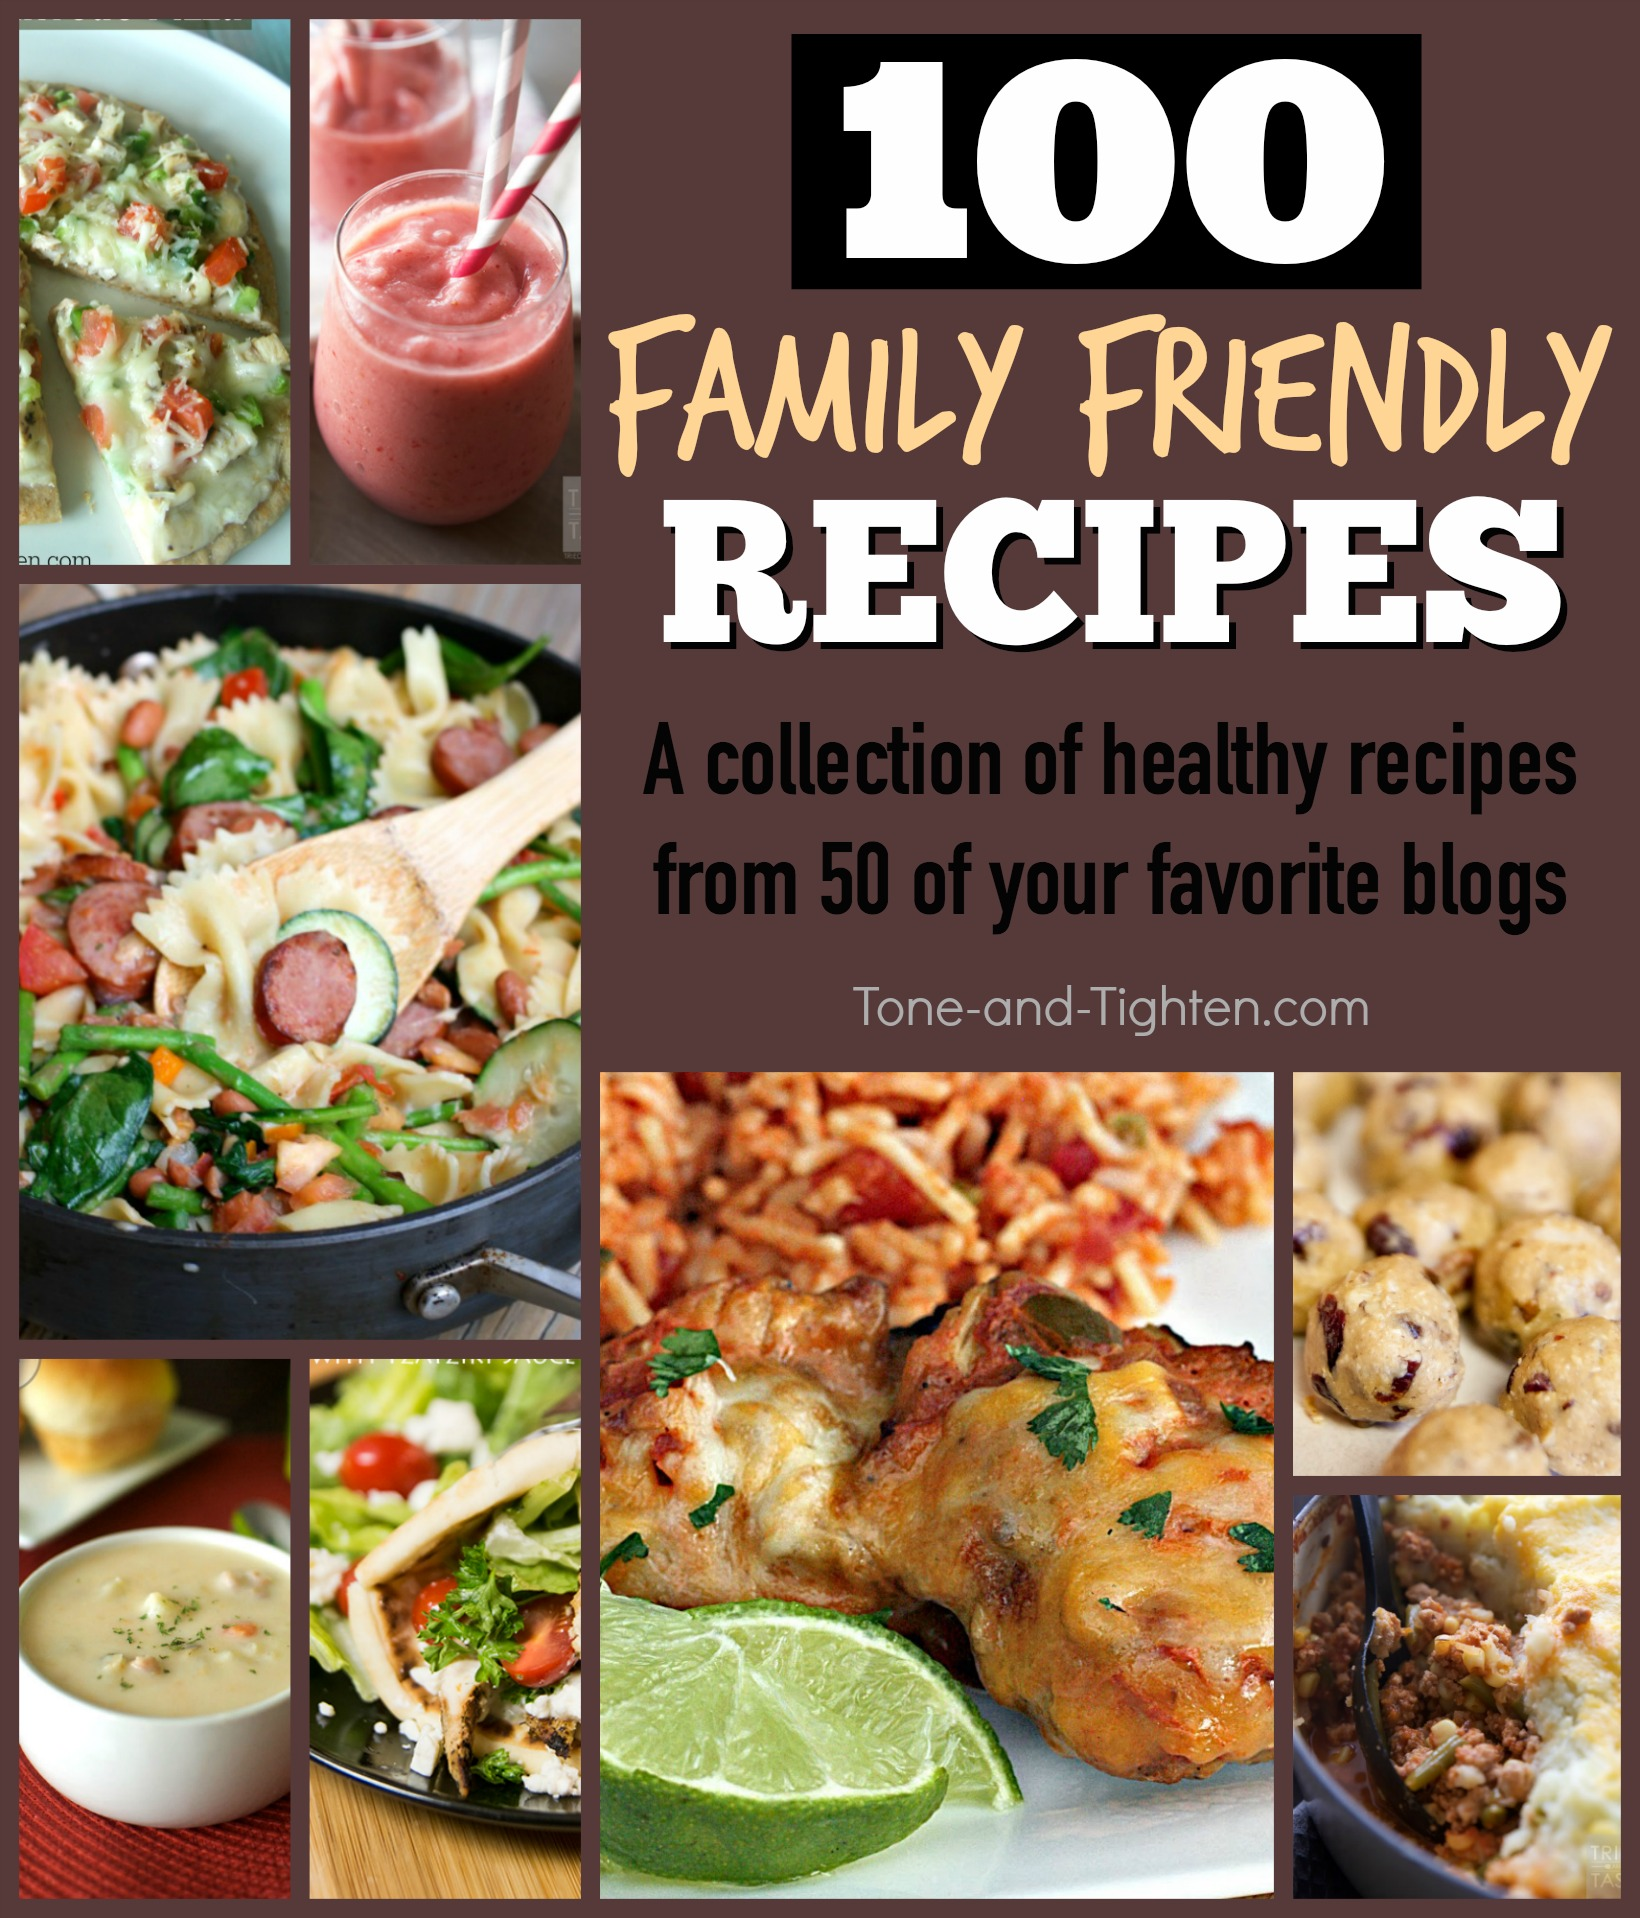 100 best healthy family friendly recipes tone and tighten best healthy family recipes from all the best blogs tone and tighten forumfinder Gallery